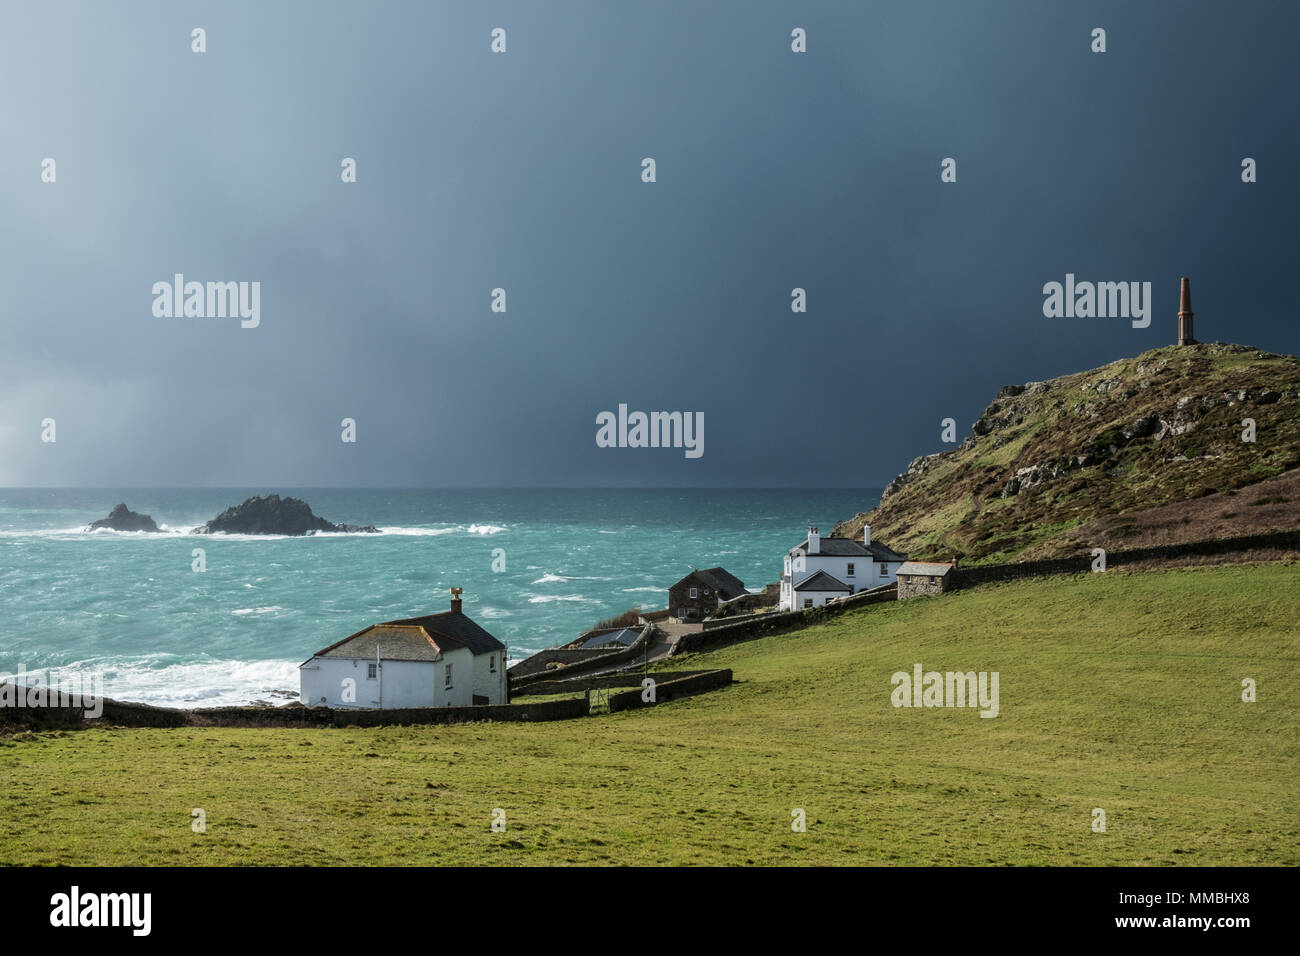 Cot Valley, St Just, West Cornwall coastline. View of cottages overlooking the coast and the Brisons Rocks under a darkening stormy sky. - Stock Image